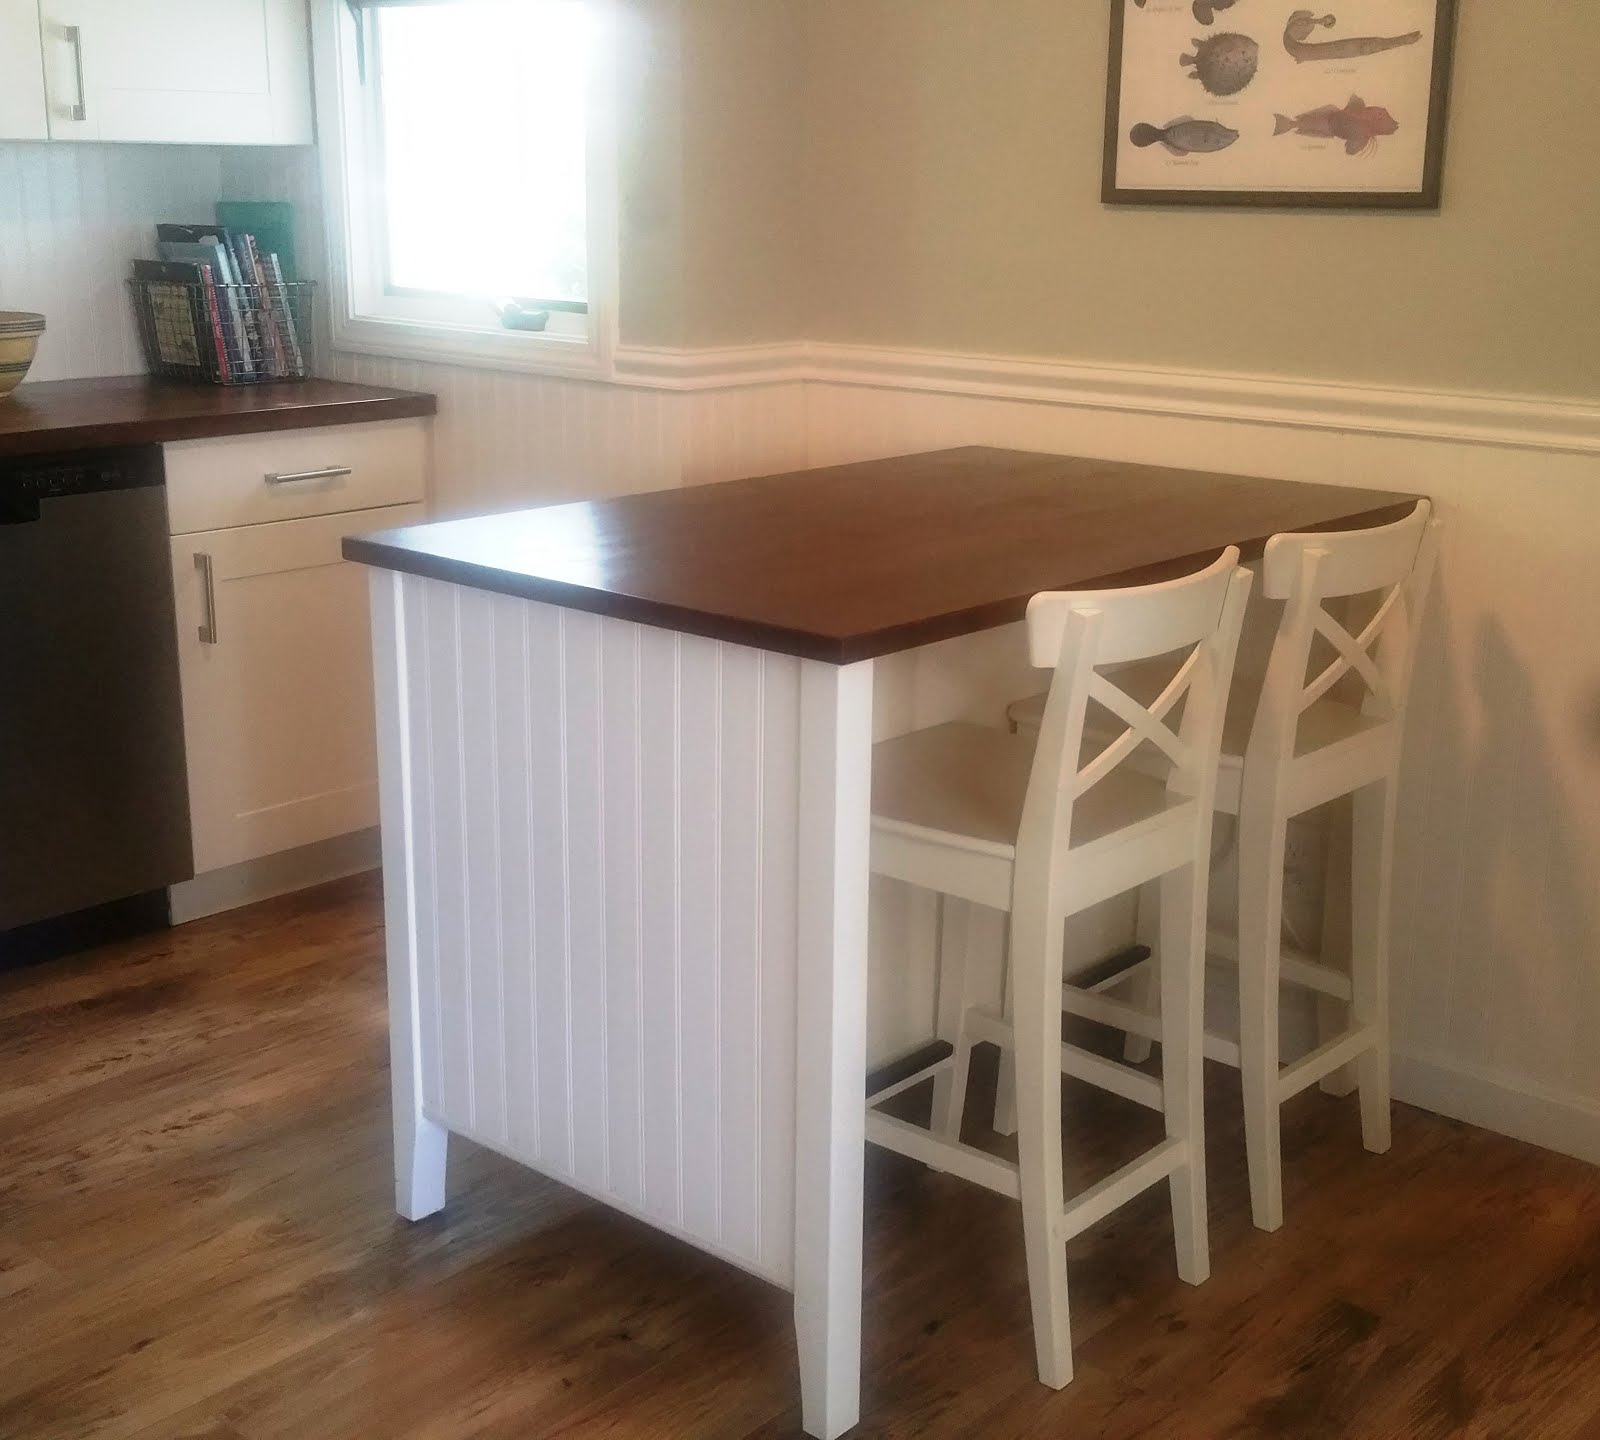 Ikea Ilot Cuisine: Salt Marsh Cottage: Ikea Kitchen Island Hack